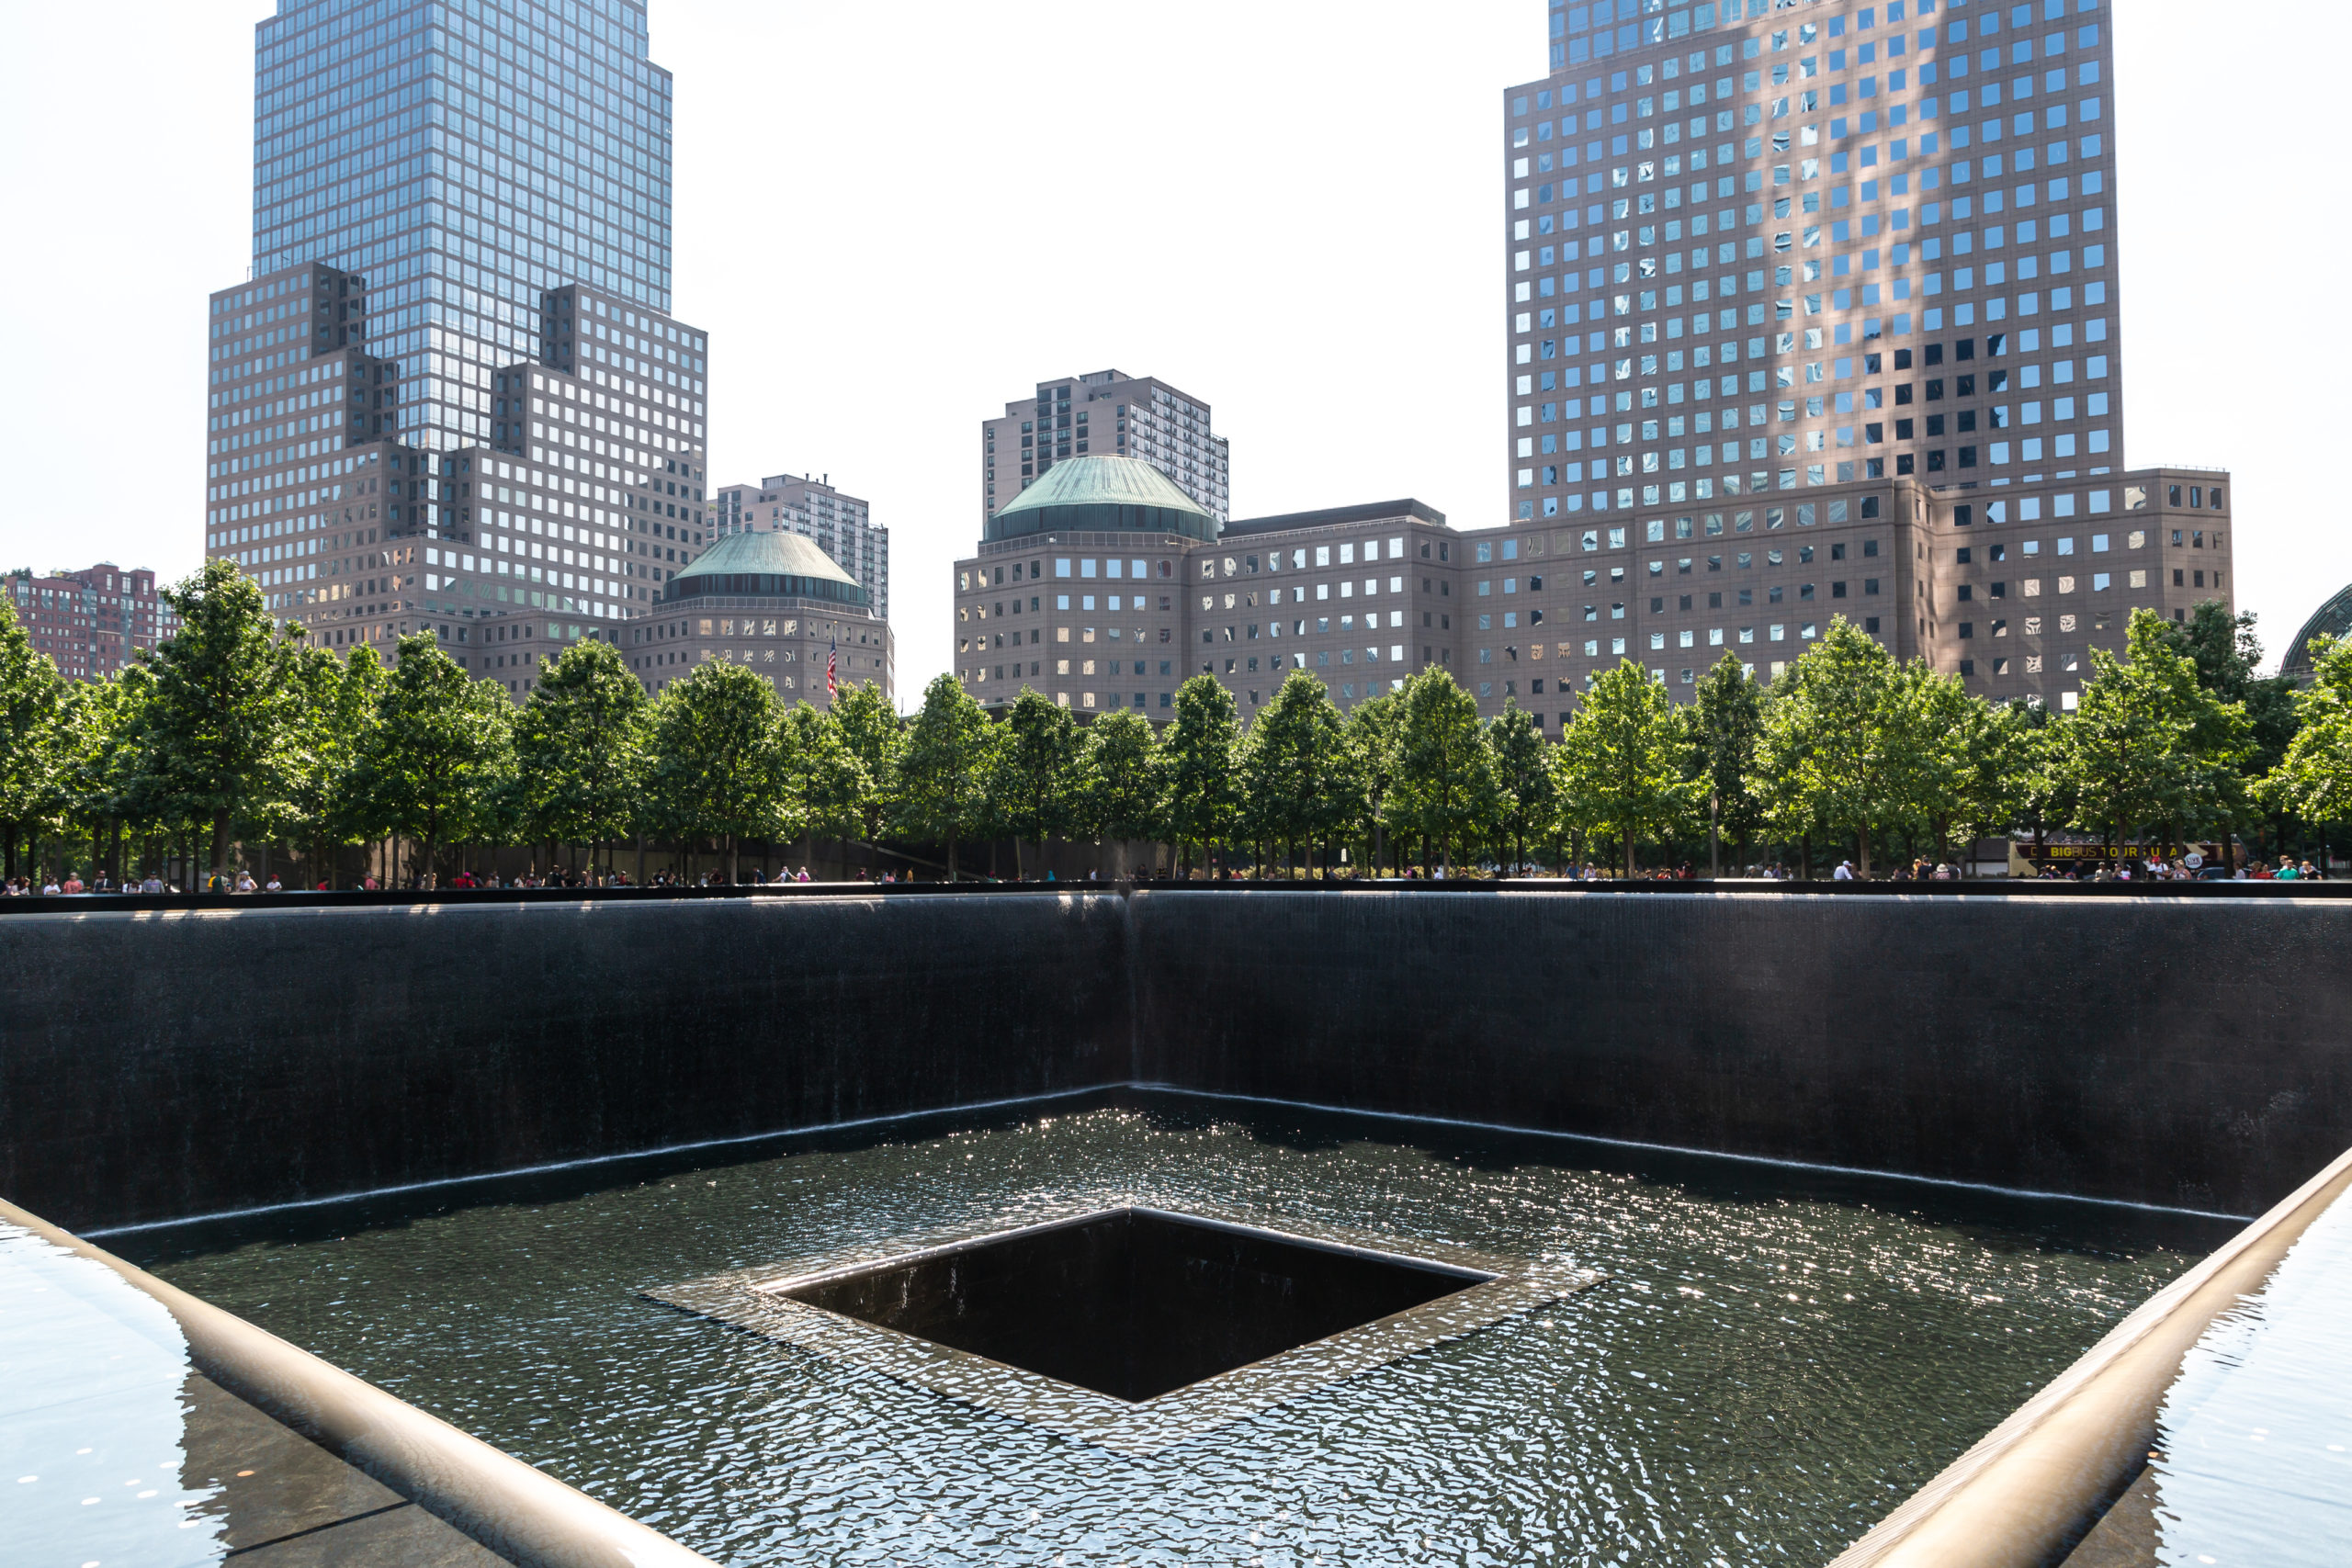 New Report Shows Illness Faced by 9/11 First Responders